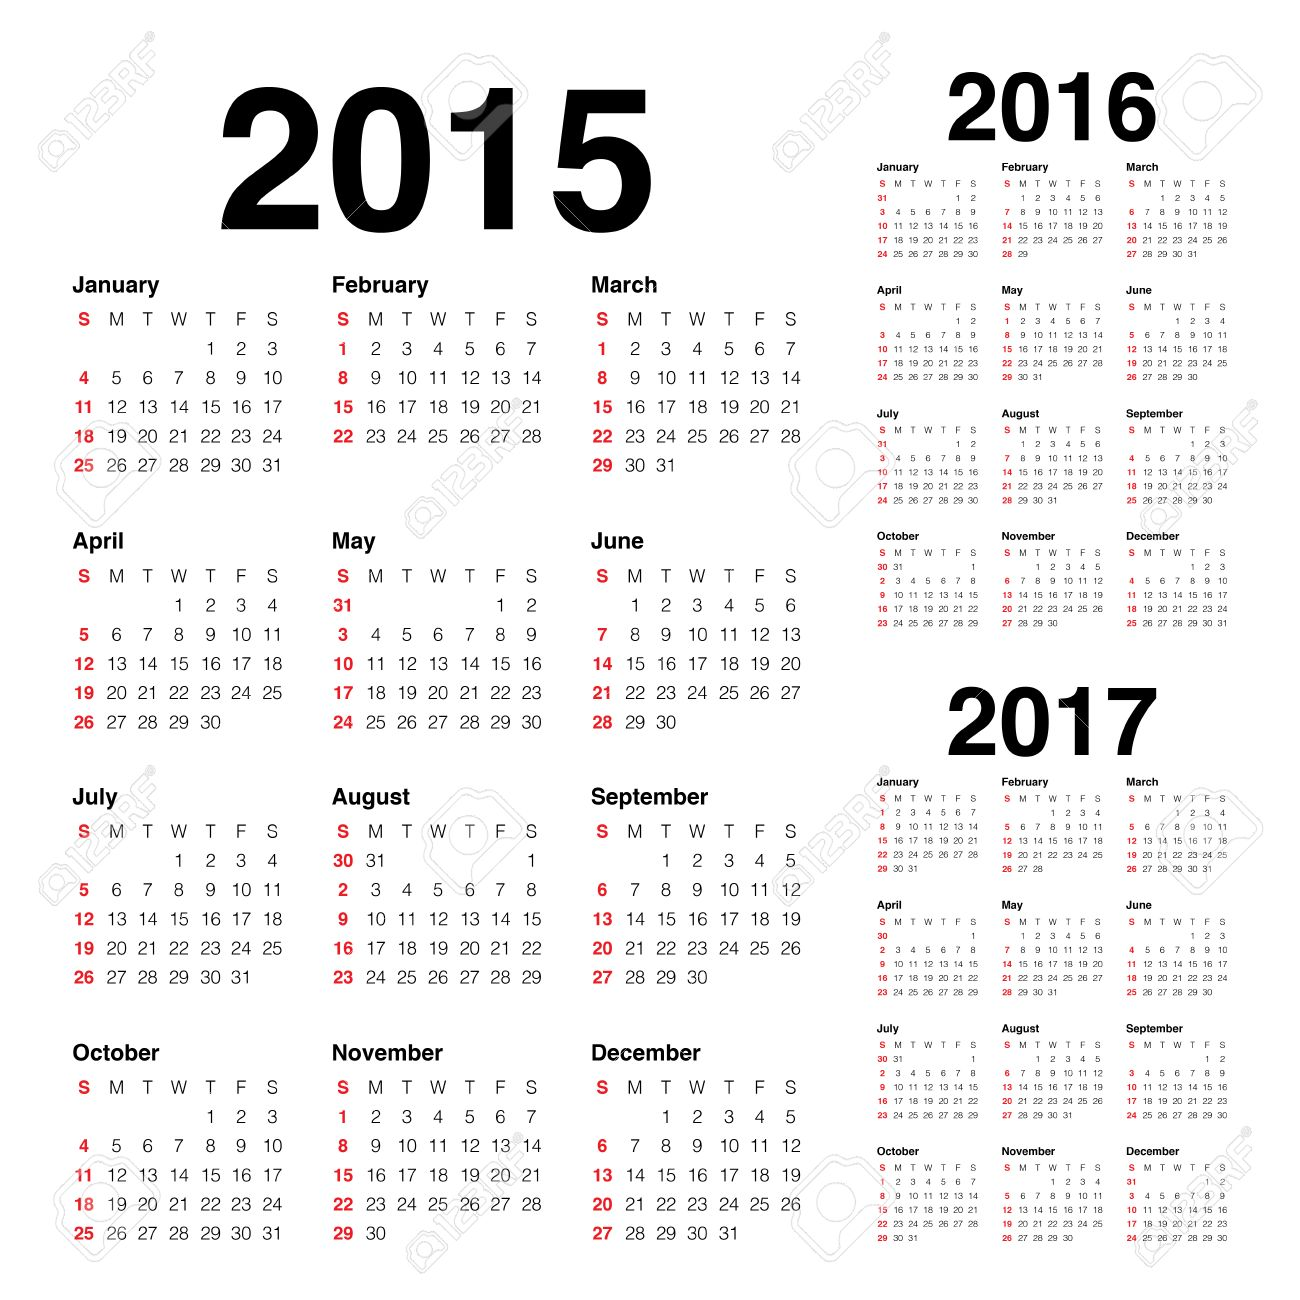 Simple Calendar 2015 2016 2017 Royalty Free Cliparts, Vectors, And ...